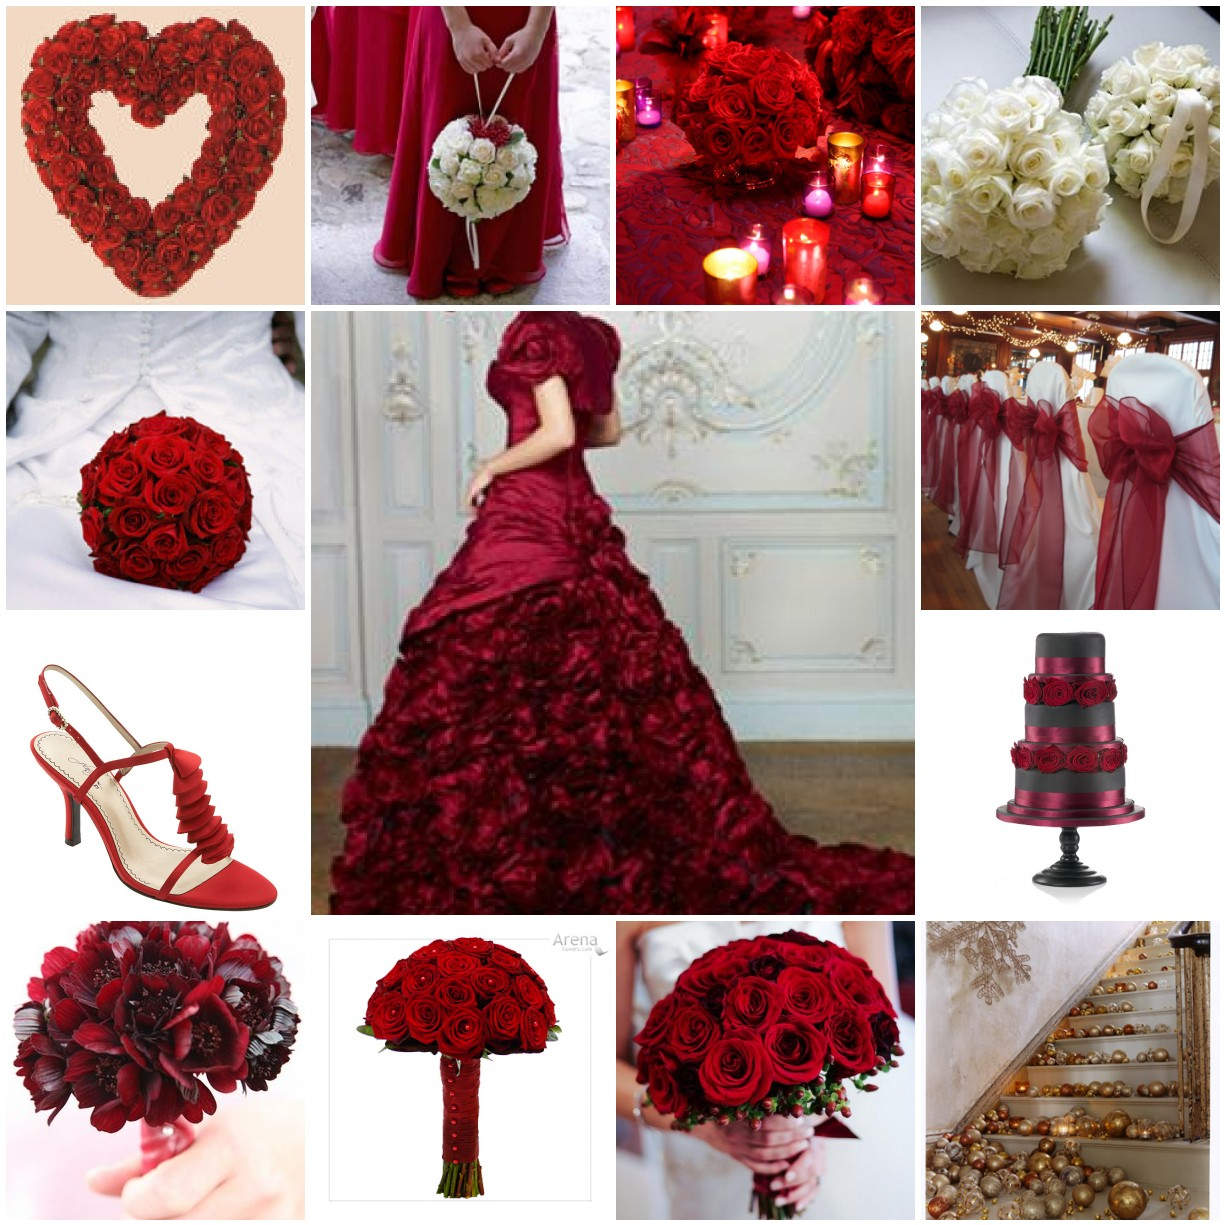 Real Fairytale Weddings Silver Spring Md: Mac's Flowers, The Wedding Flower Specialist, County Clare